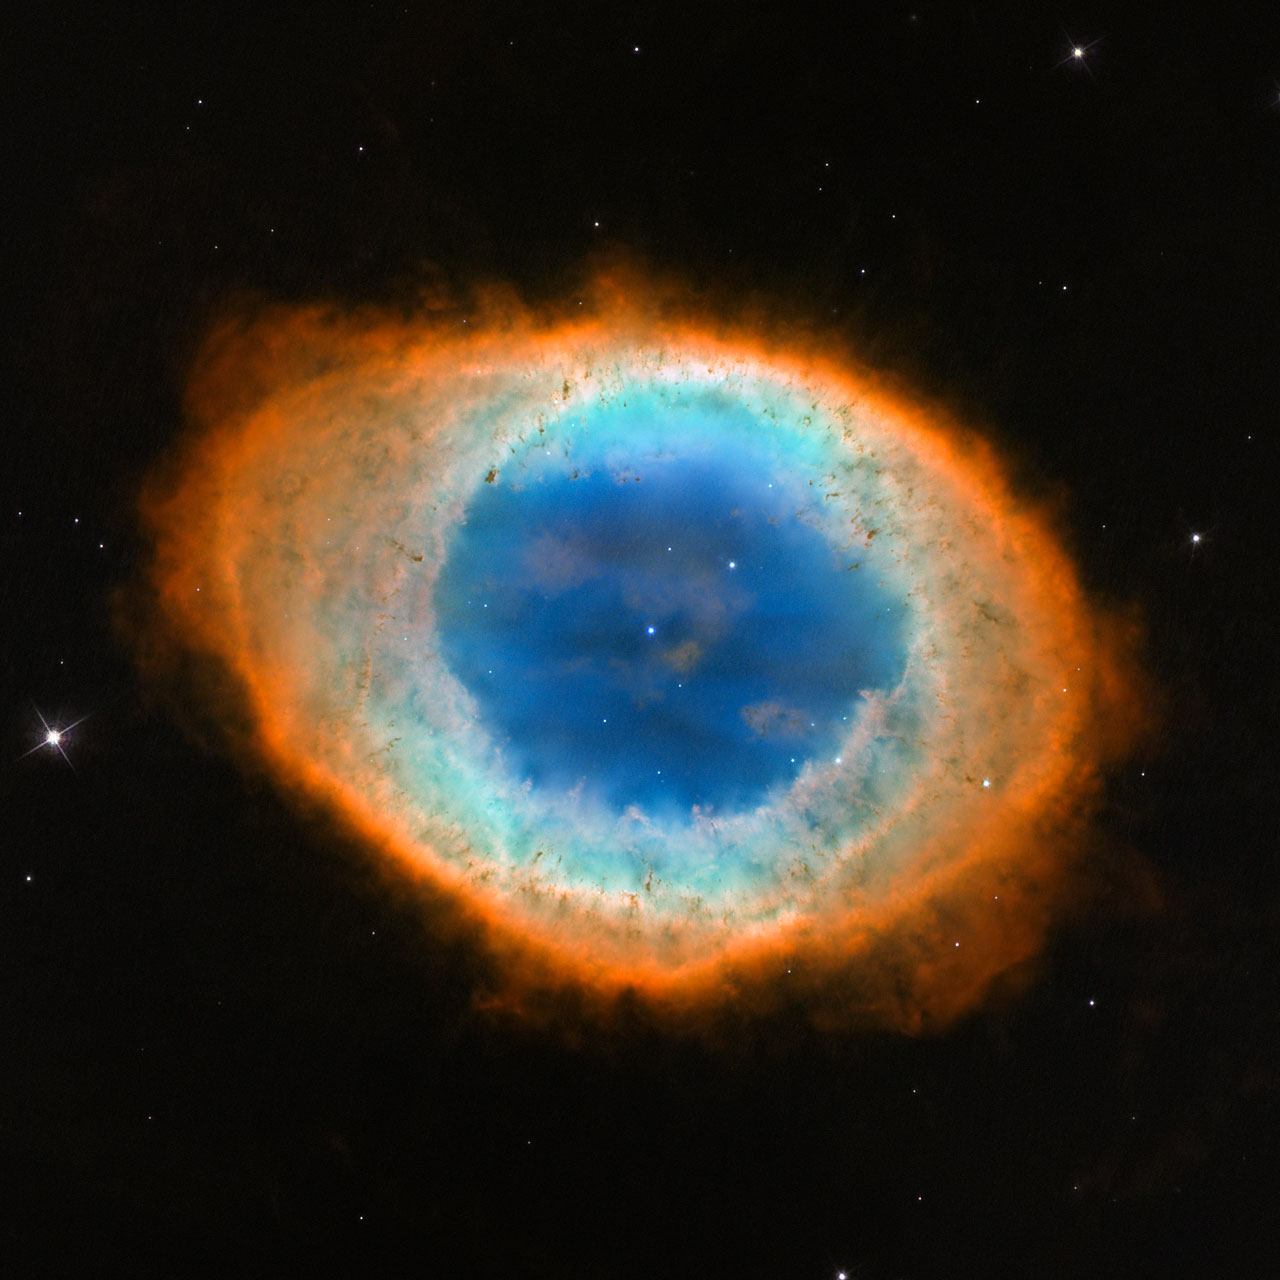 Hubble image of the Ring Nebula